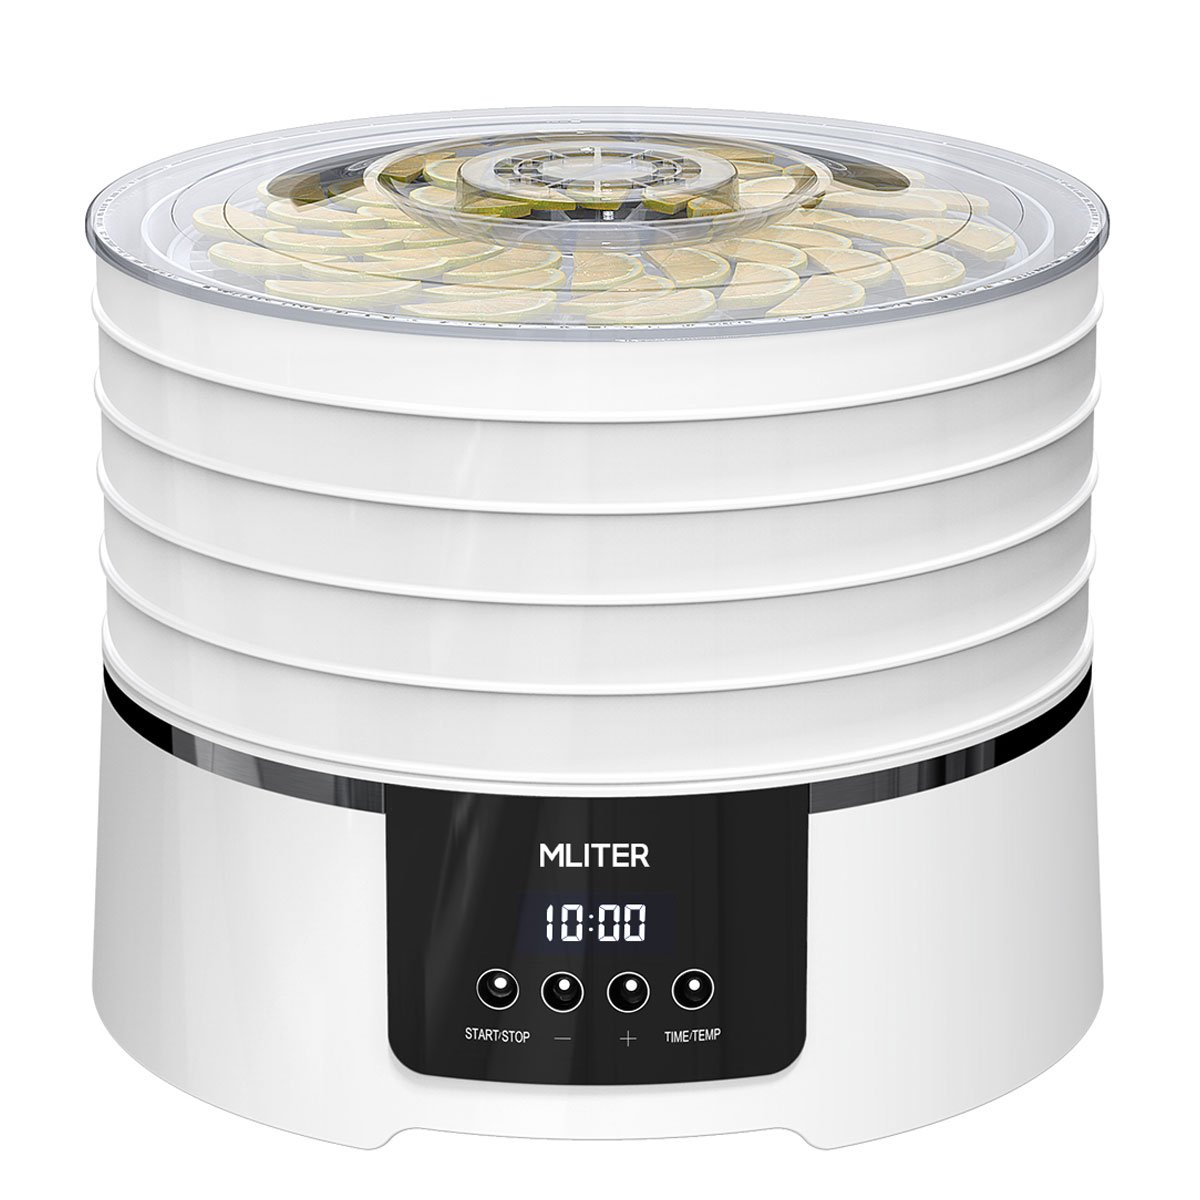 MLITER BPA Free Digital Food Dehydrator Machine with 5 Dishwasher Safe Trays for Meat Fruit Vegetable Herb and Beef Jerky, Countdown Time & Temperature Presetting - Home Use - 450W/White